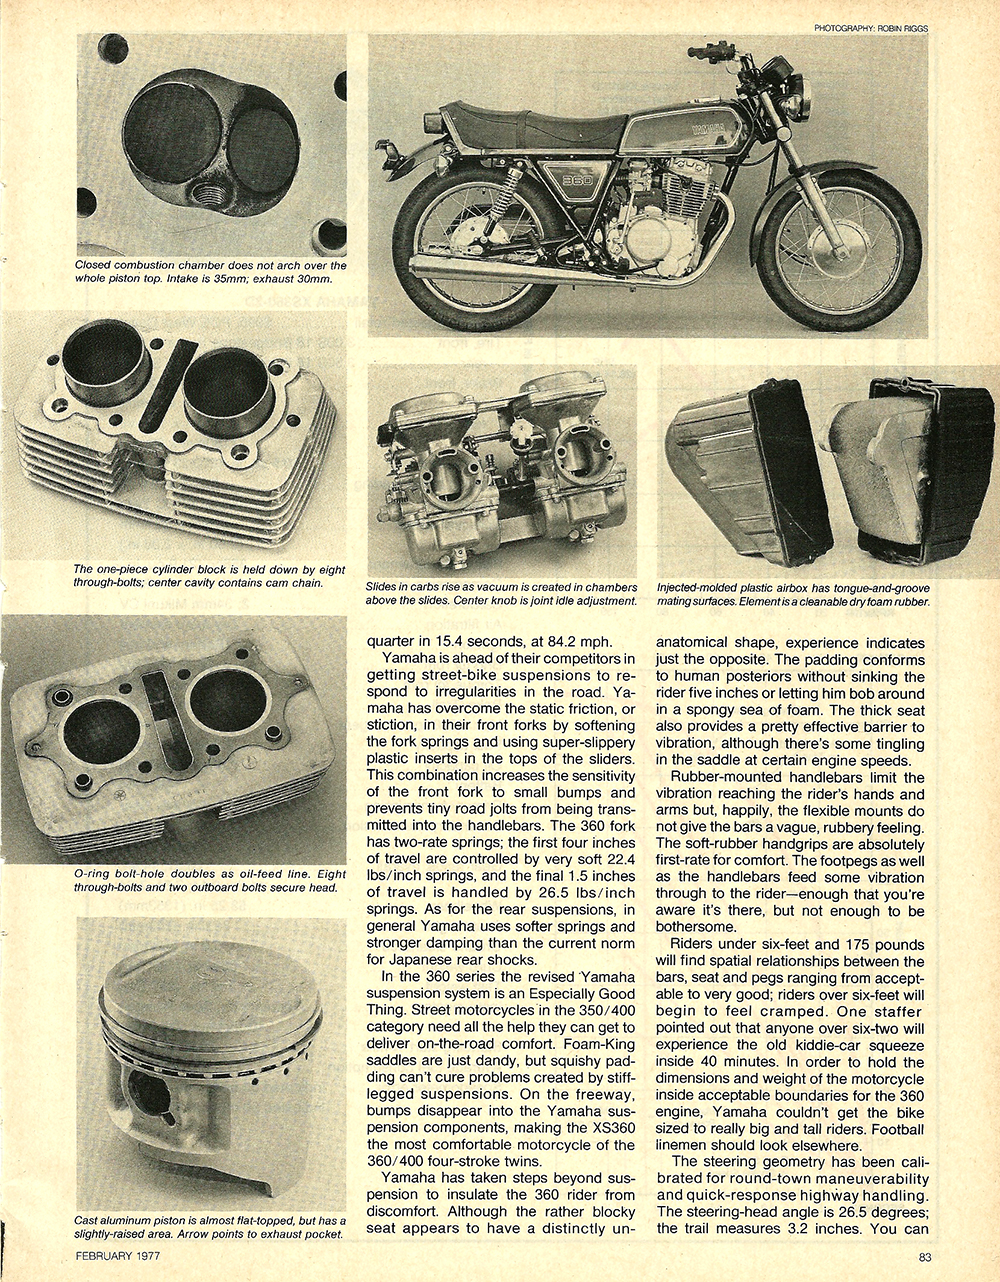 1977 Yamaha XS360-2D road test 3.jpg